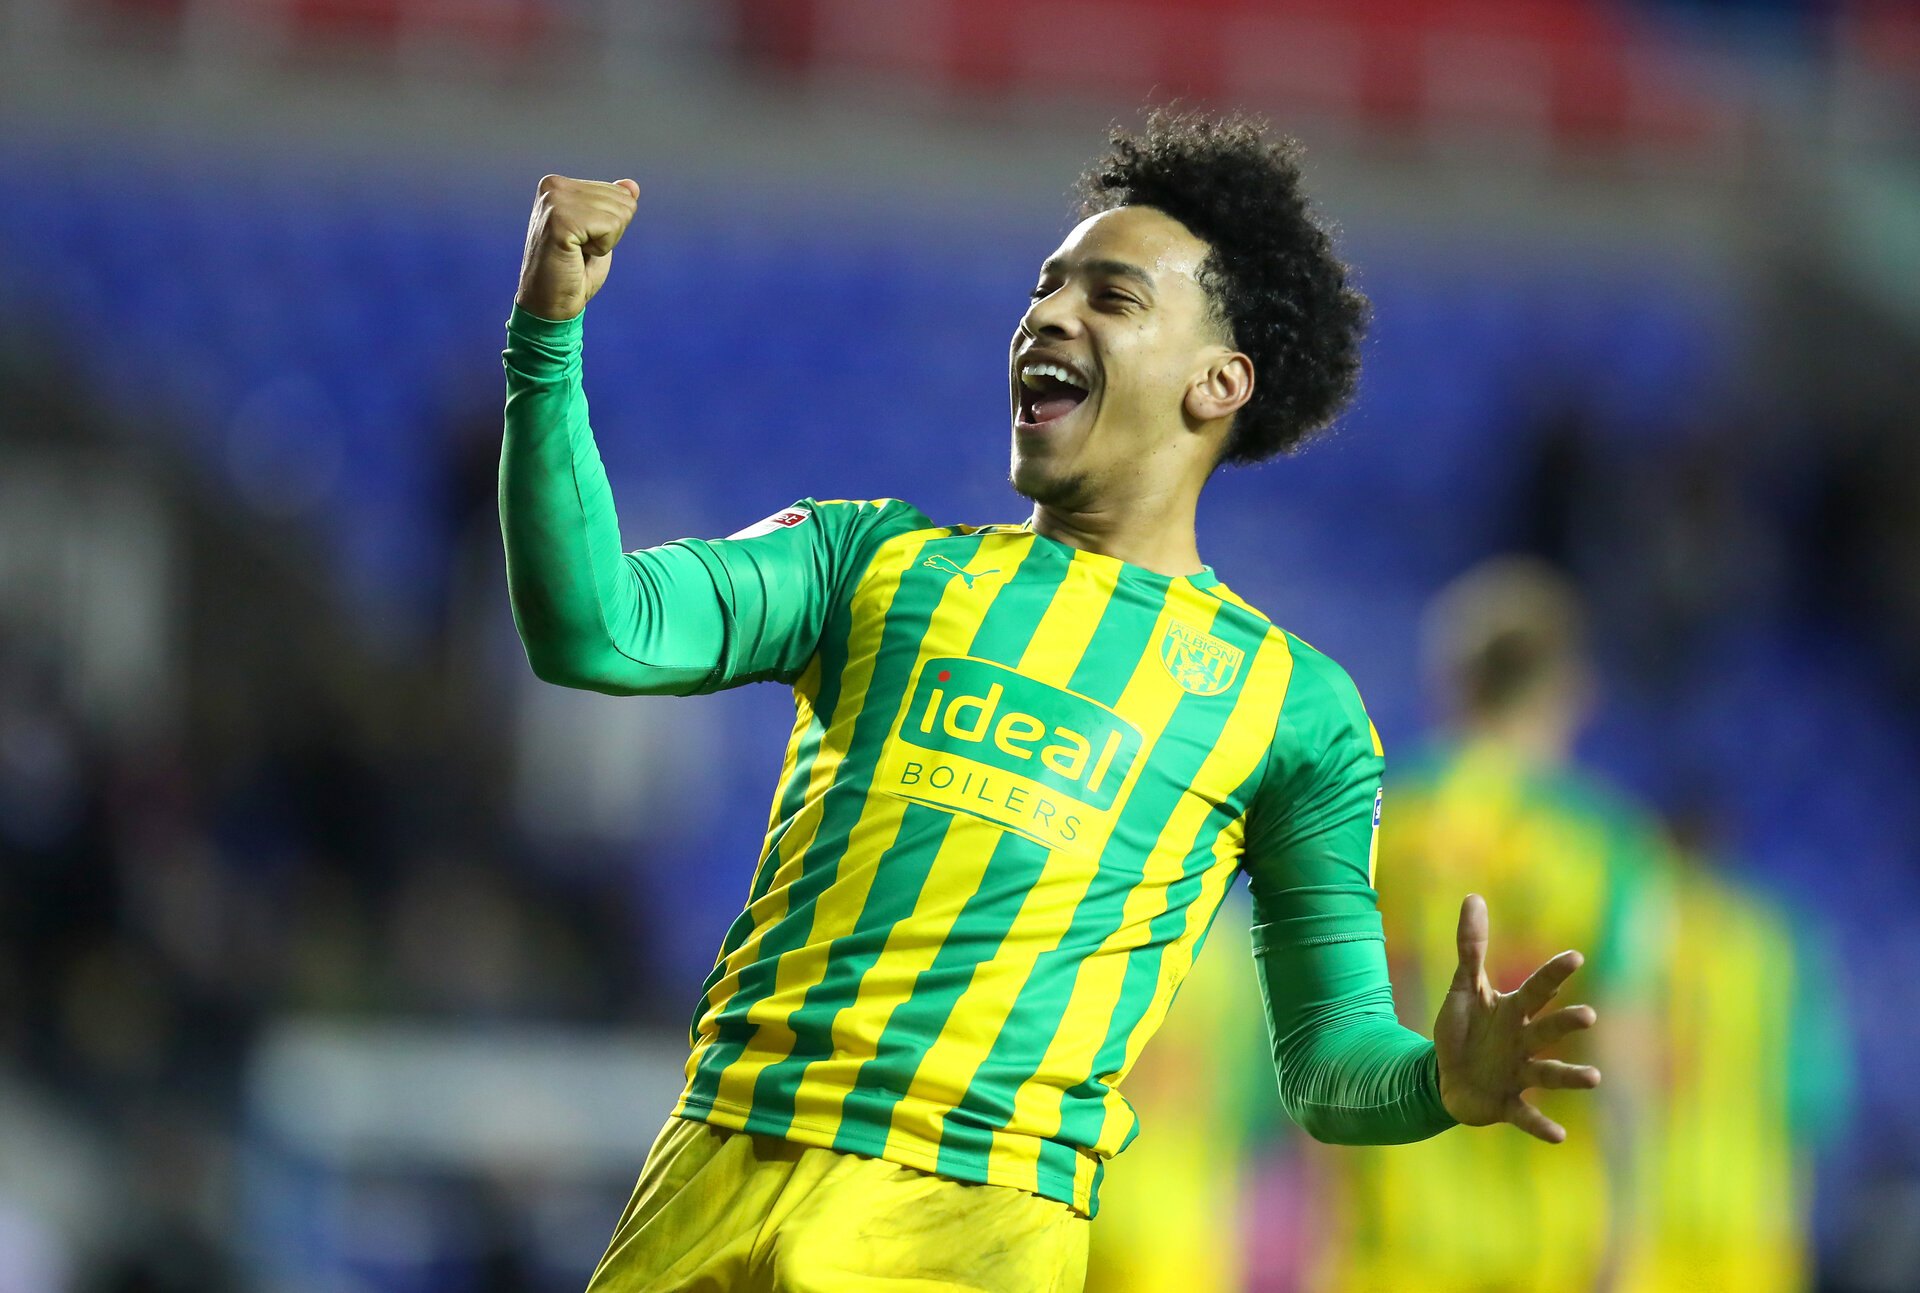 READING, ENGLAND - FEBRUARY 12: Matheus Pereira of West Bromwich Albion celebrates victory during the Sky Bet Championship match between Reading and West Bromwich Albion at Madejski Stadium on February 12, 2020 in Reading, England. (Photo by Catherine Ivill/Getty Images)